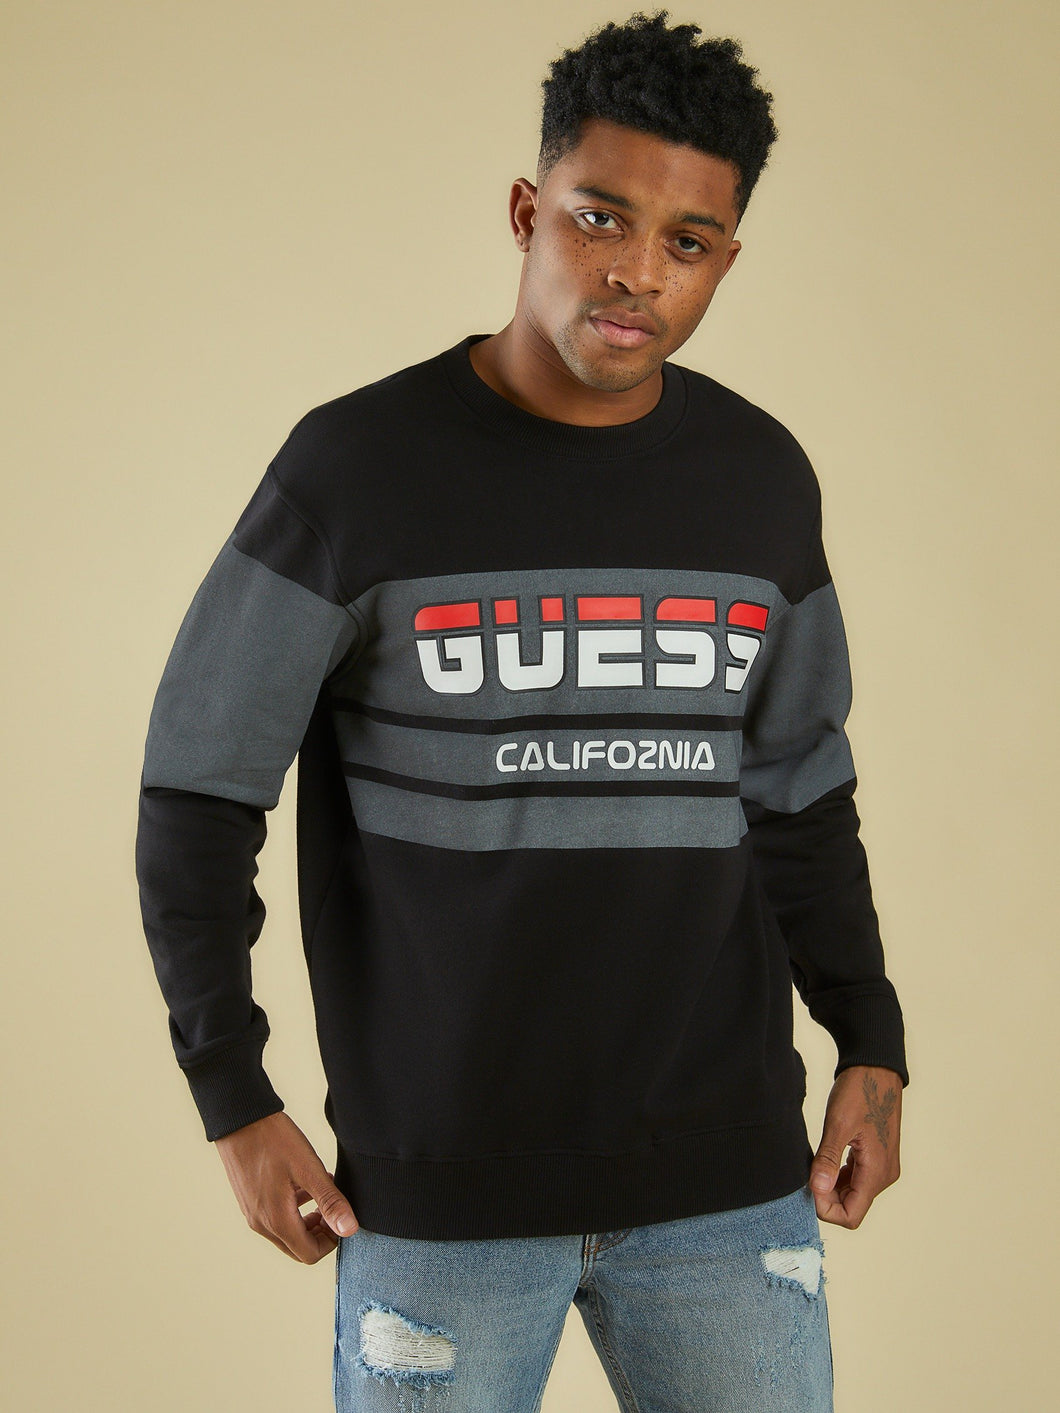 LS ROY GUESS SPORT SWEATSHIRT